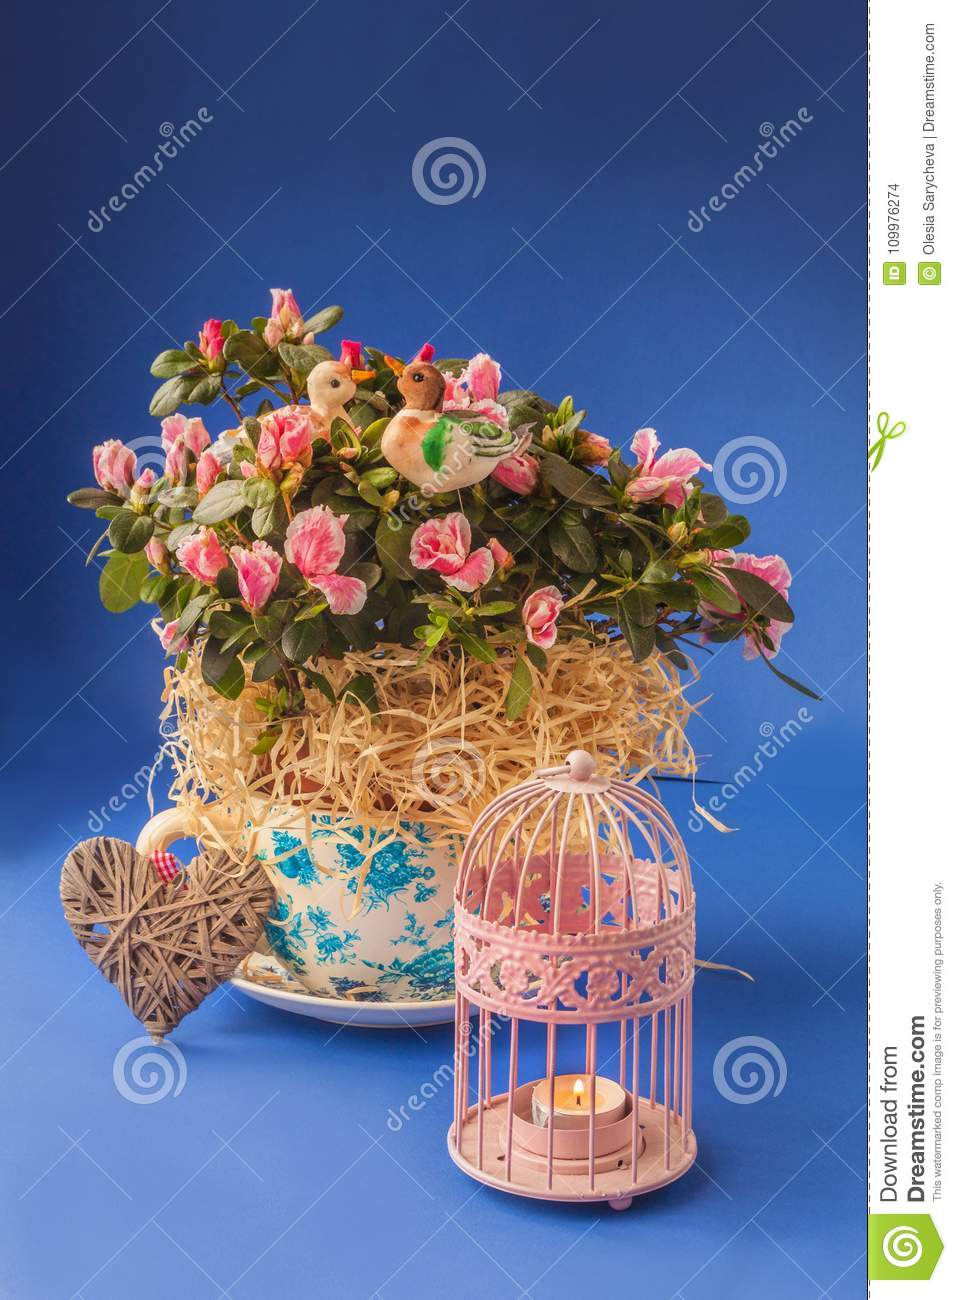 Azalea rhododendron in vintage pot and candlestick on a blue